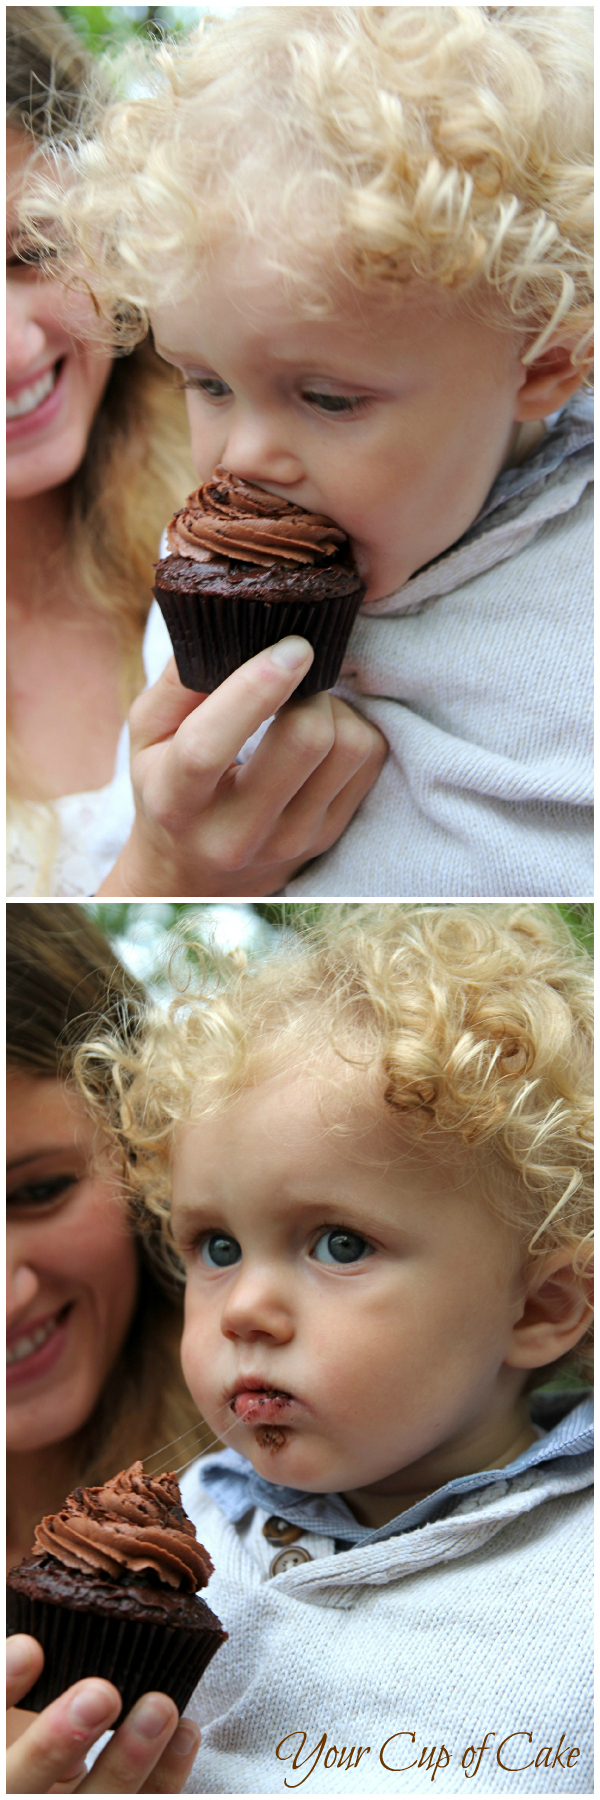 His first cupcake